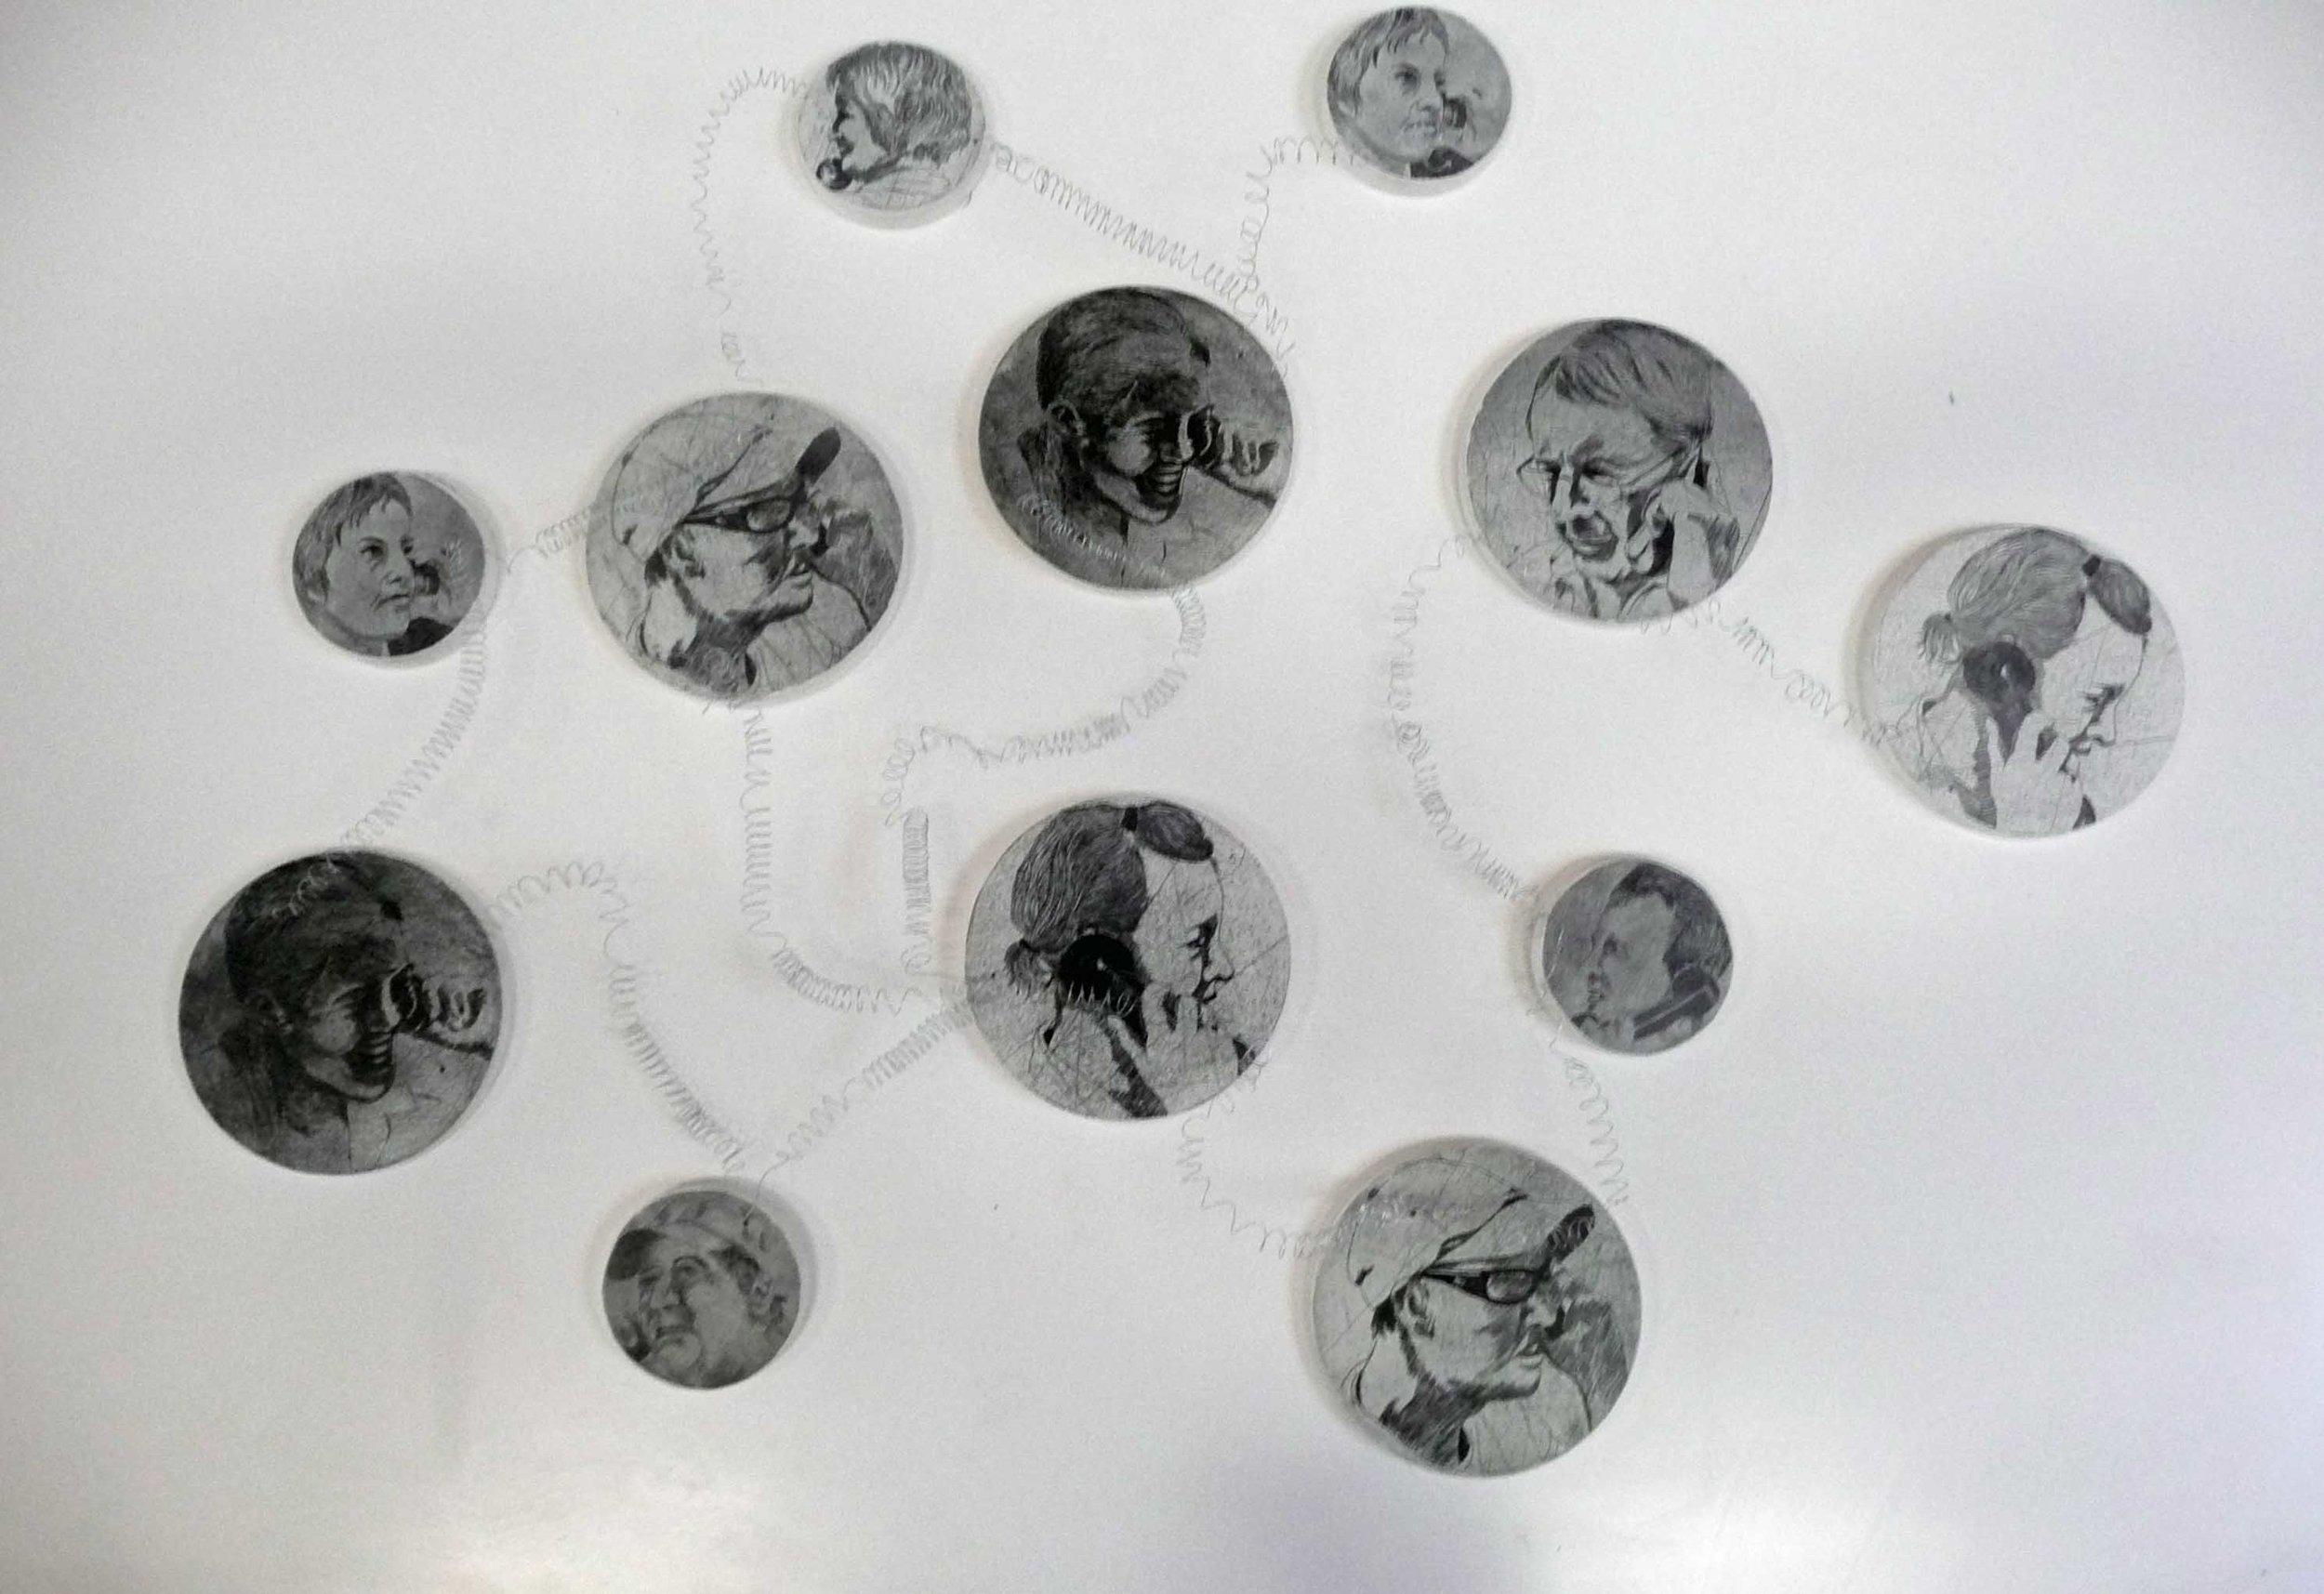 I've-got-something-to-tell-you-plaster-prints-etchings-kathy-boyle